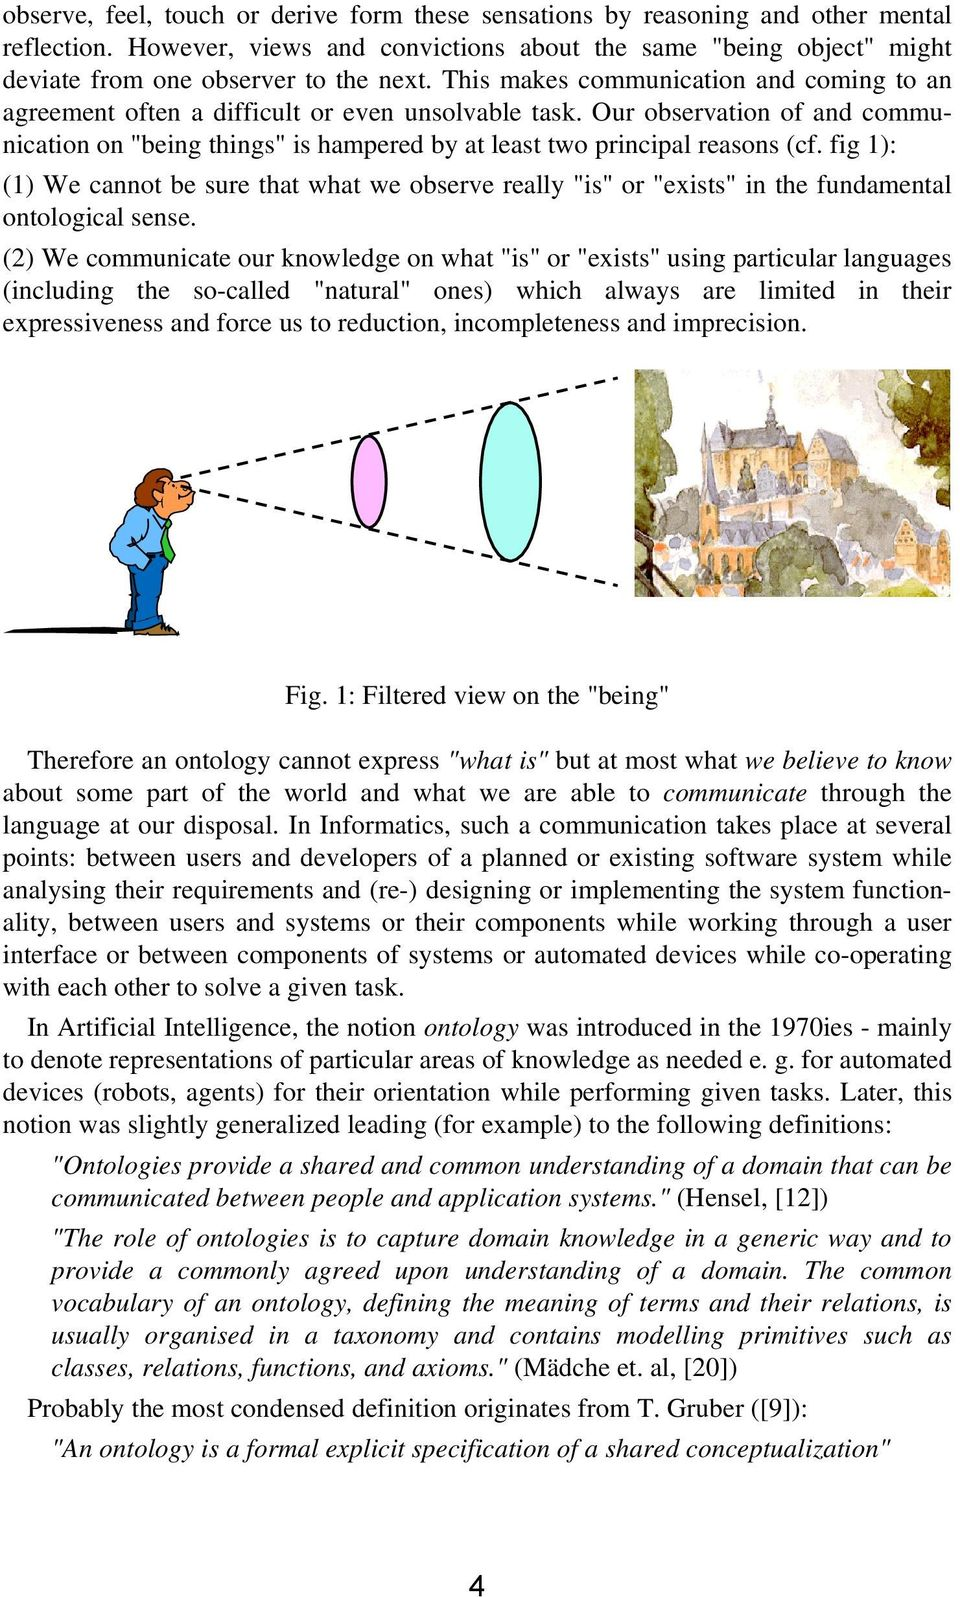 "fig 1): (1) We cannot be sure that what we observe really ""is"" or ""exists"" in the fundamental ontological sense."